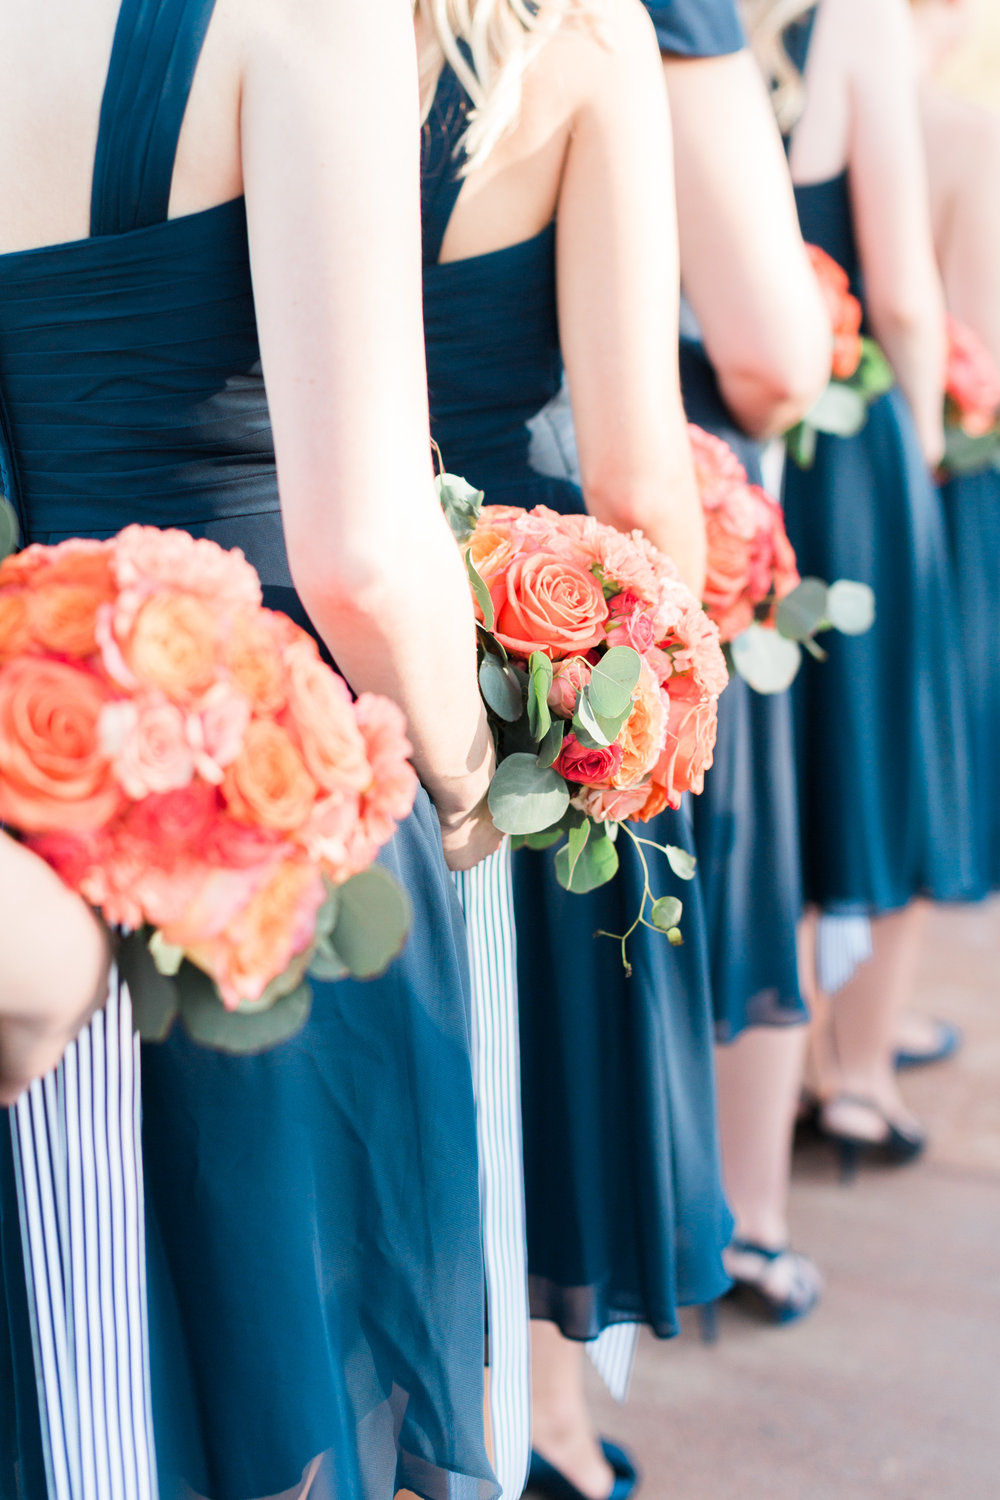 Bridesmaids holding bouquets during the ceremony.